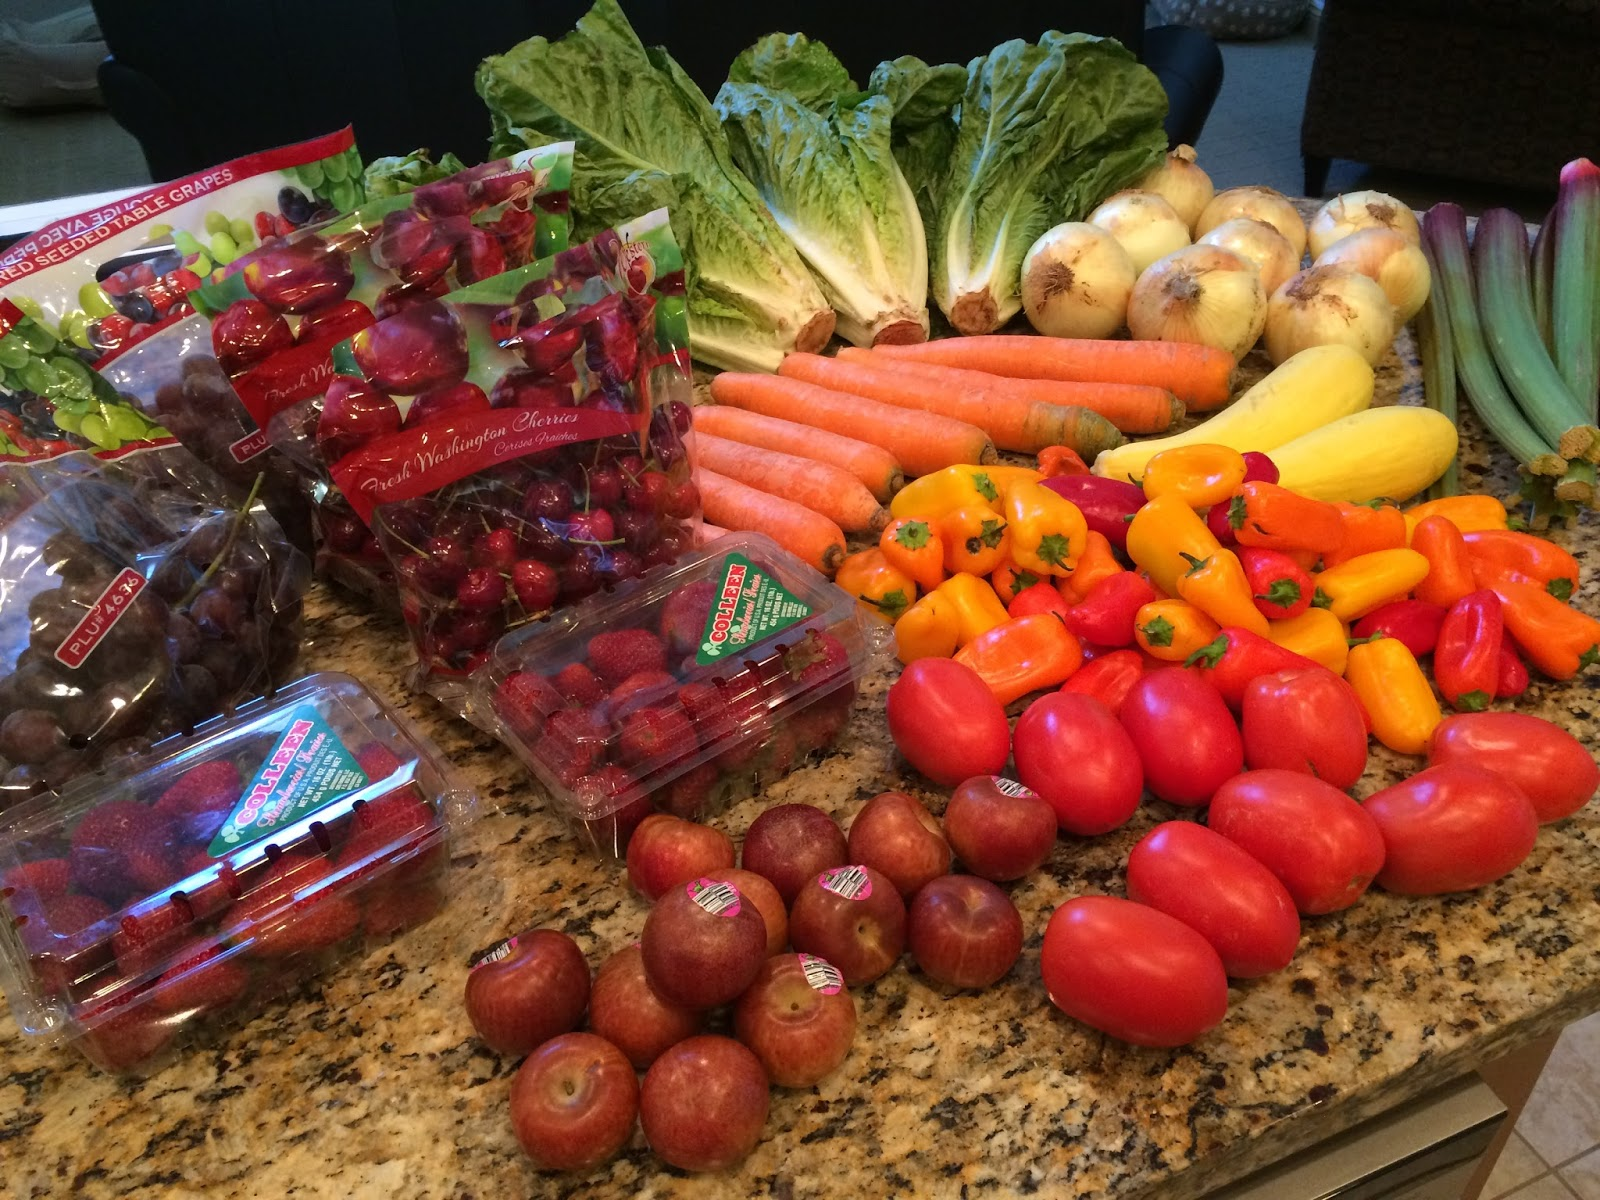 Food garden pictures - Bountiful Baskets Haul 7 25 2015